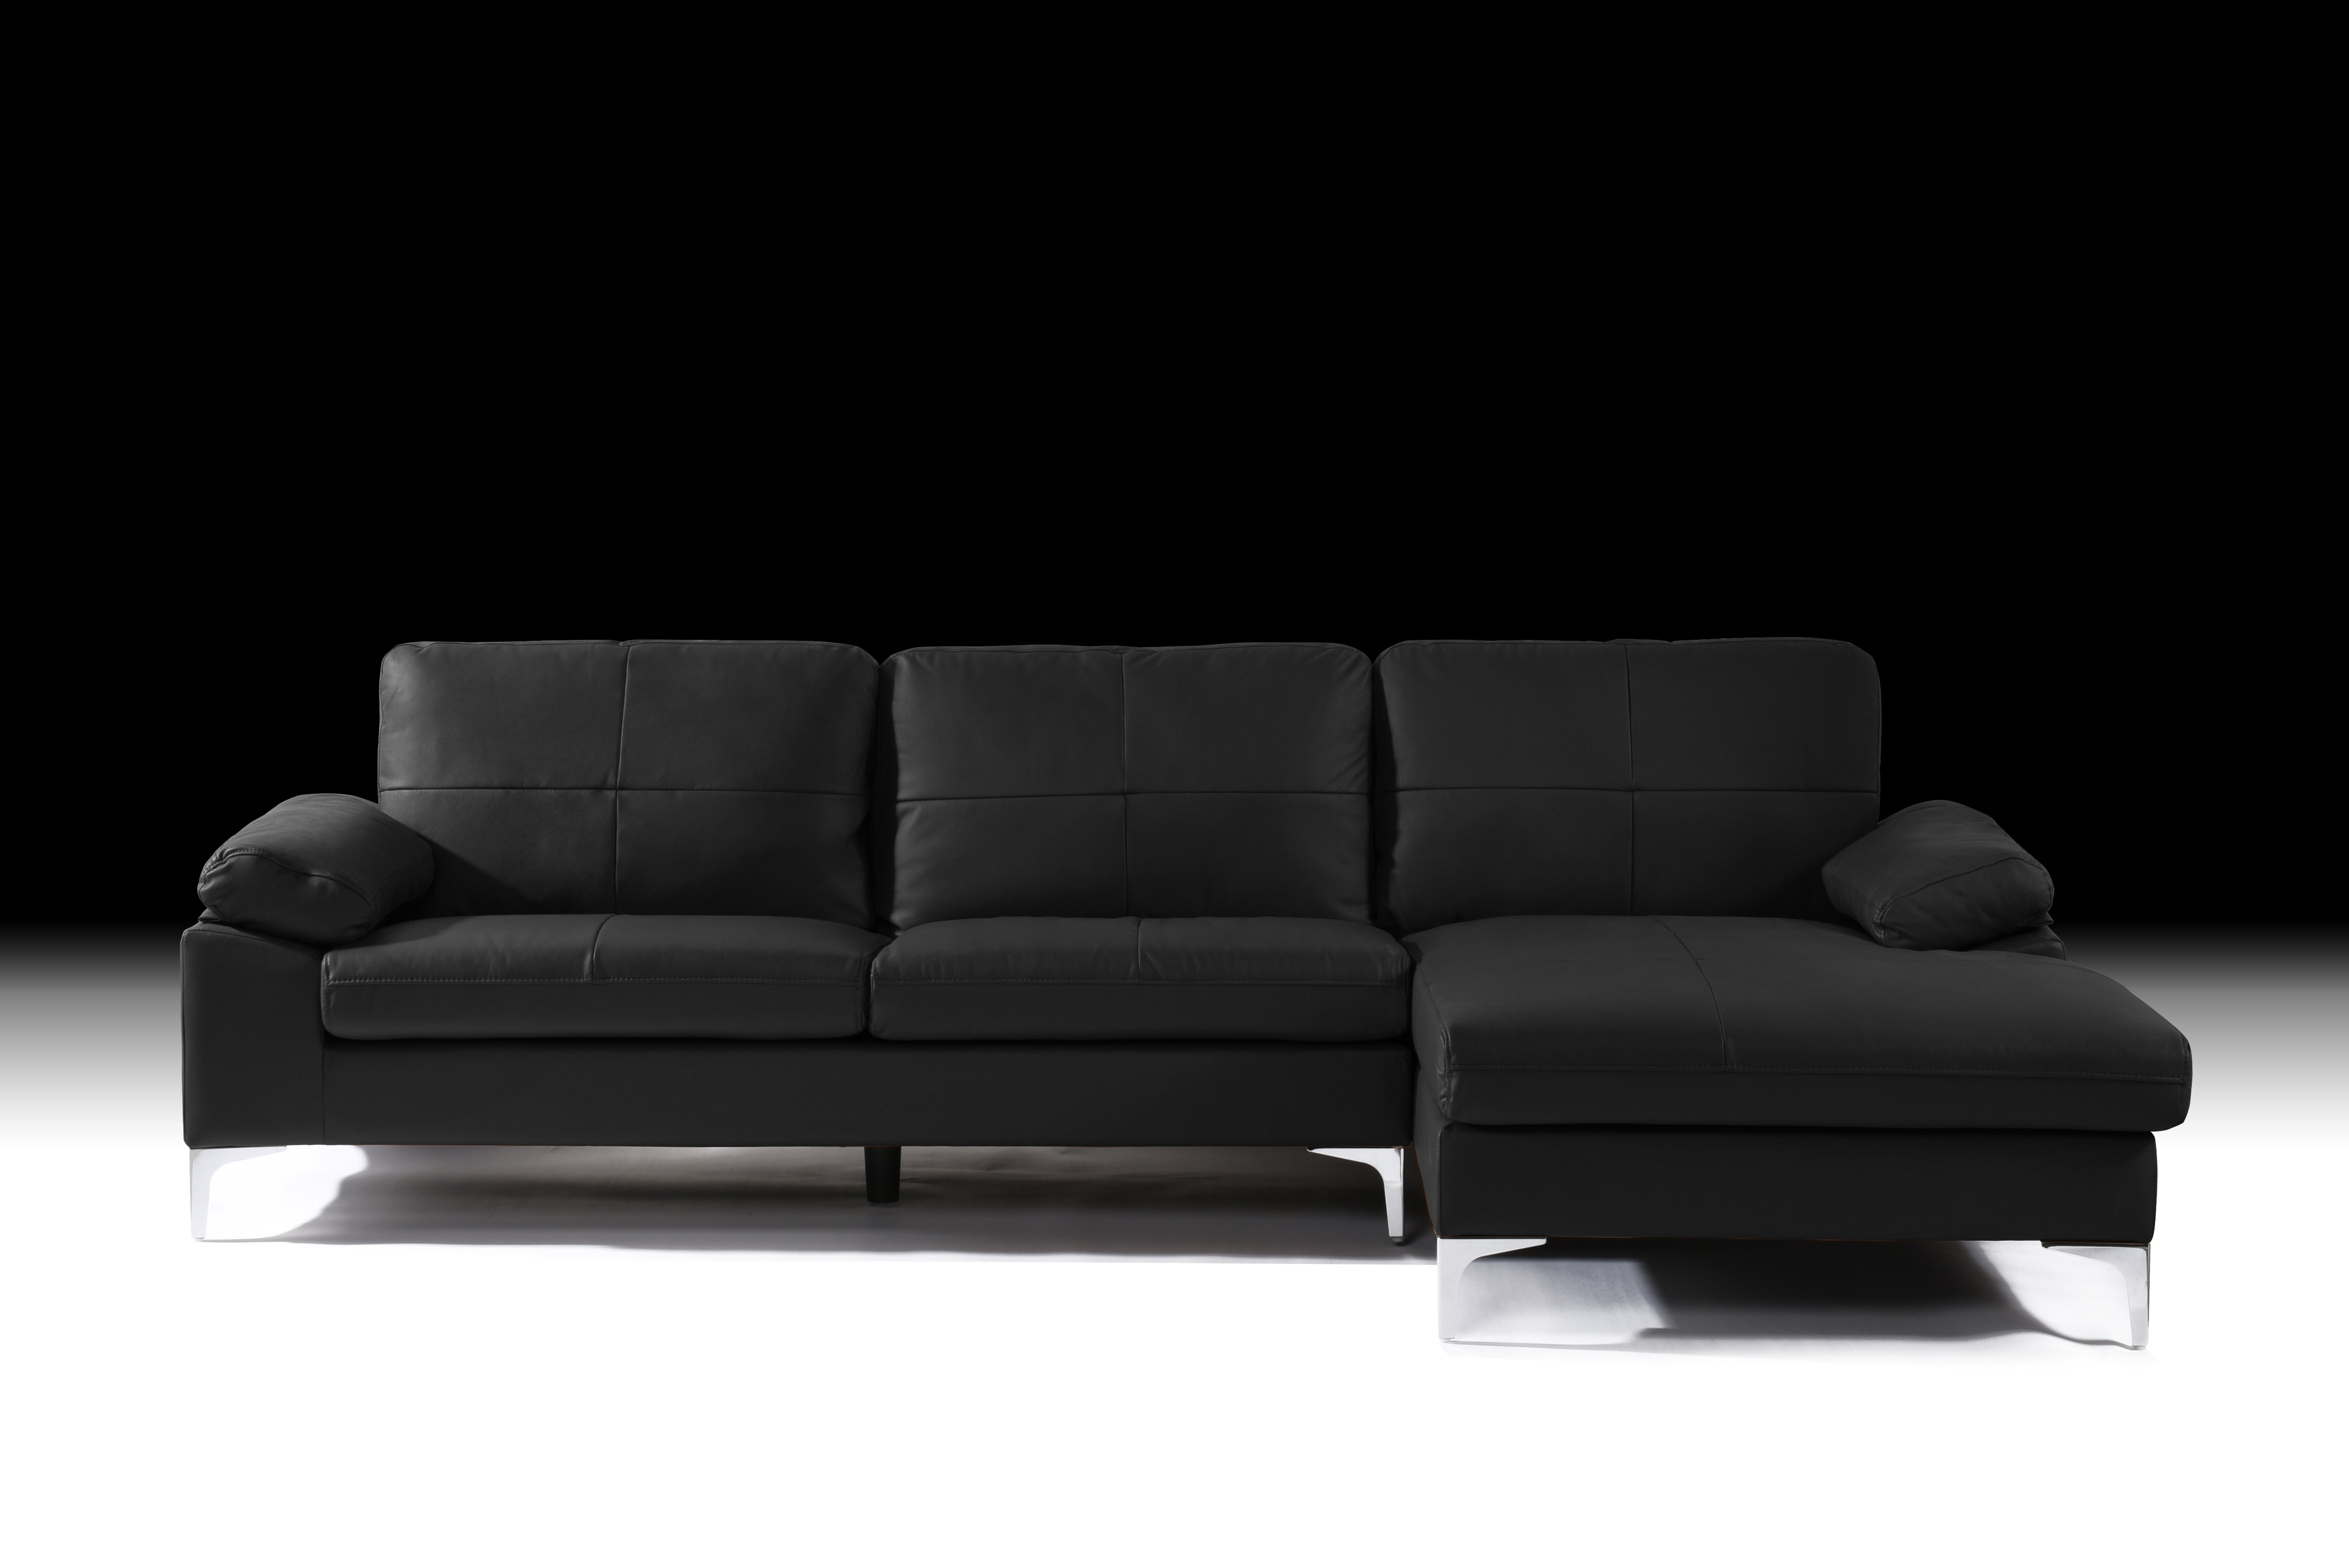 Details about Black Large Leather Sectional Sofa, L-Shape Couch with  Chaise, 108.7\